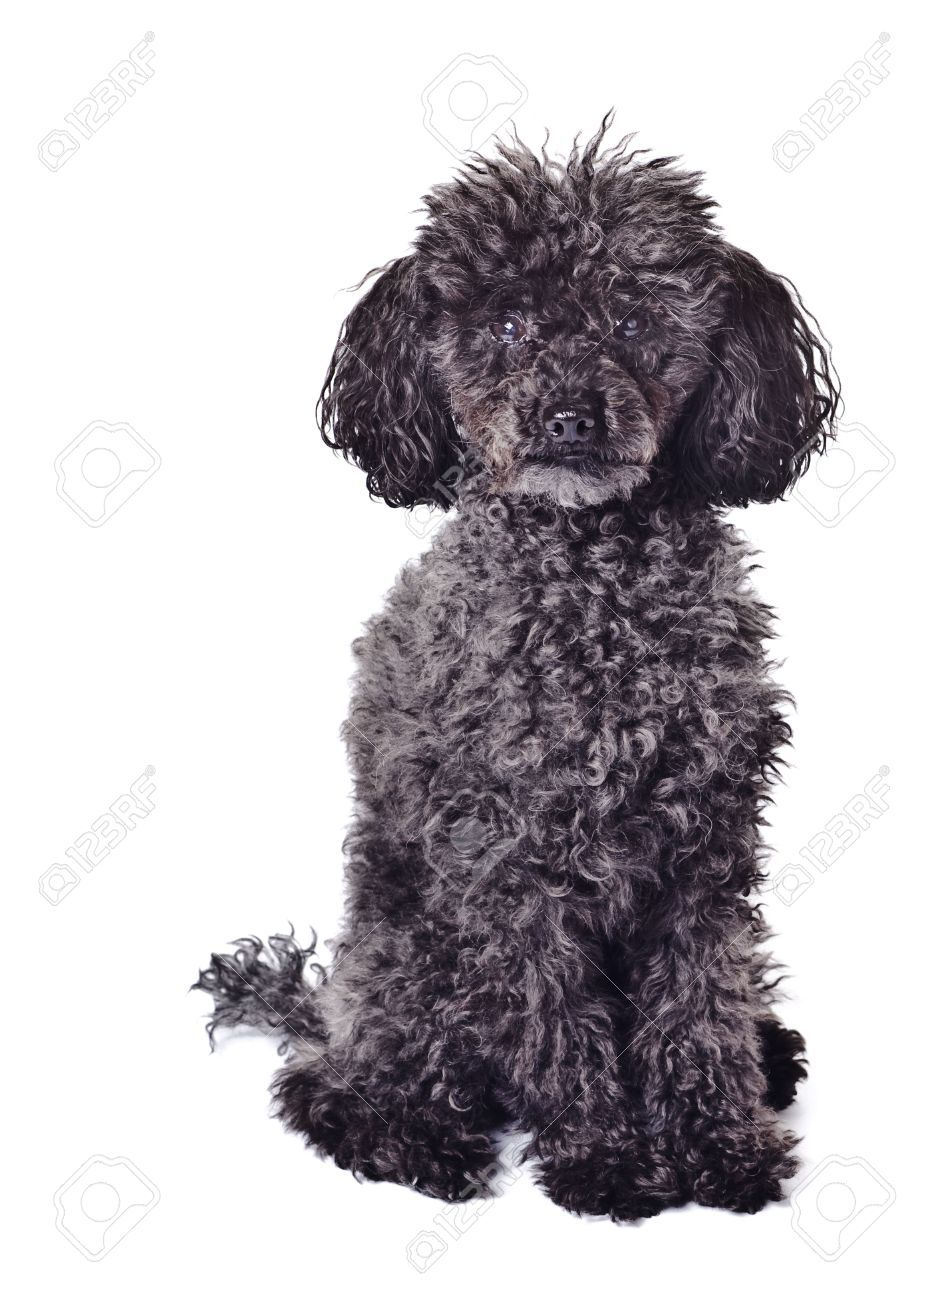 Black Toy Poodle Full Grown Google Search Spiral Art Altered